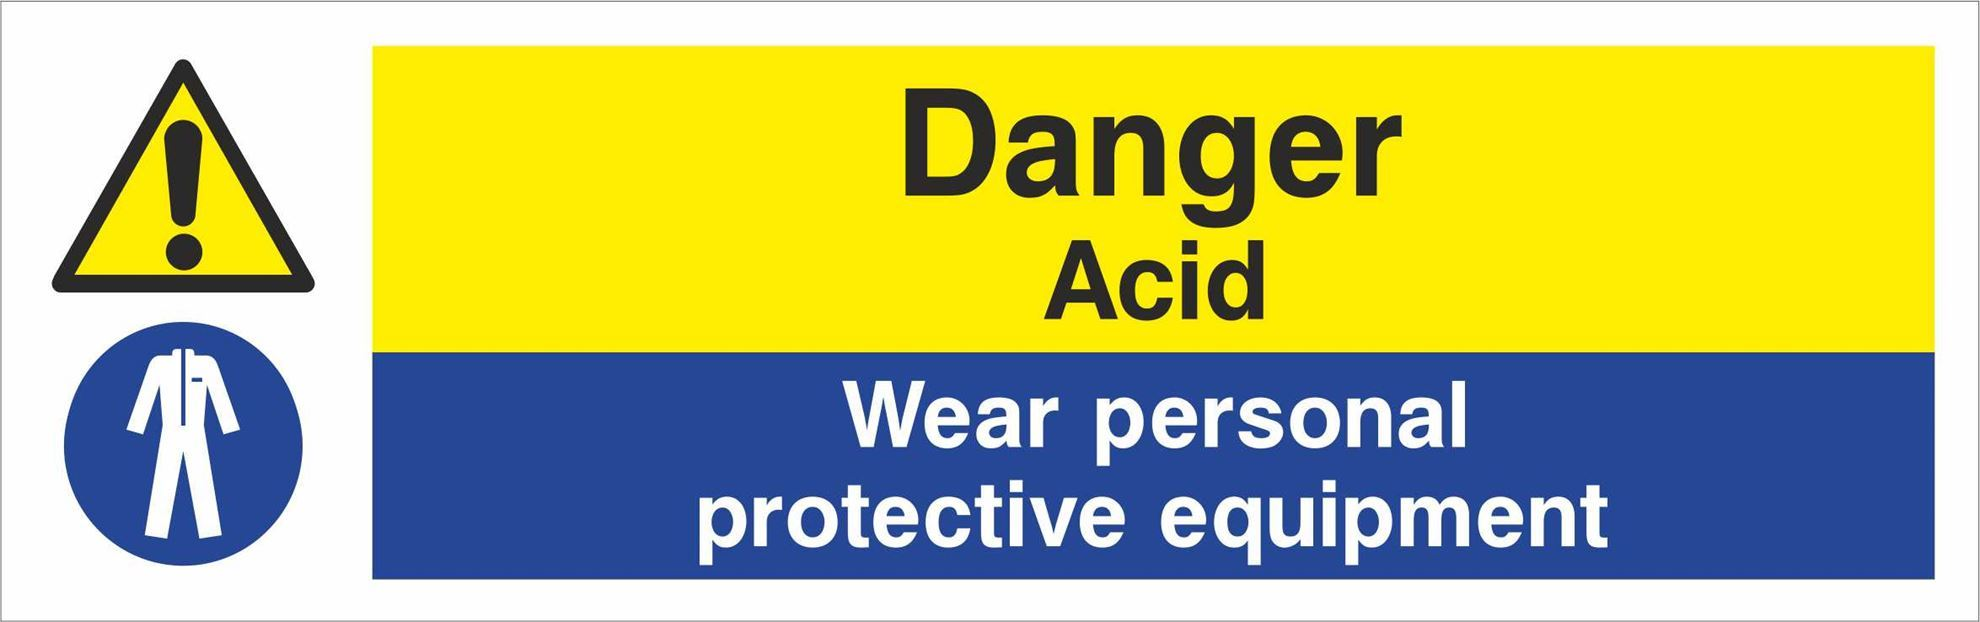 Danger Acid Wear personal protective equipment